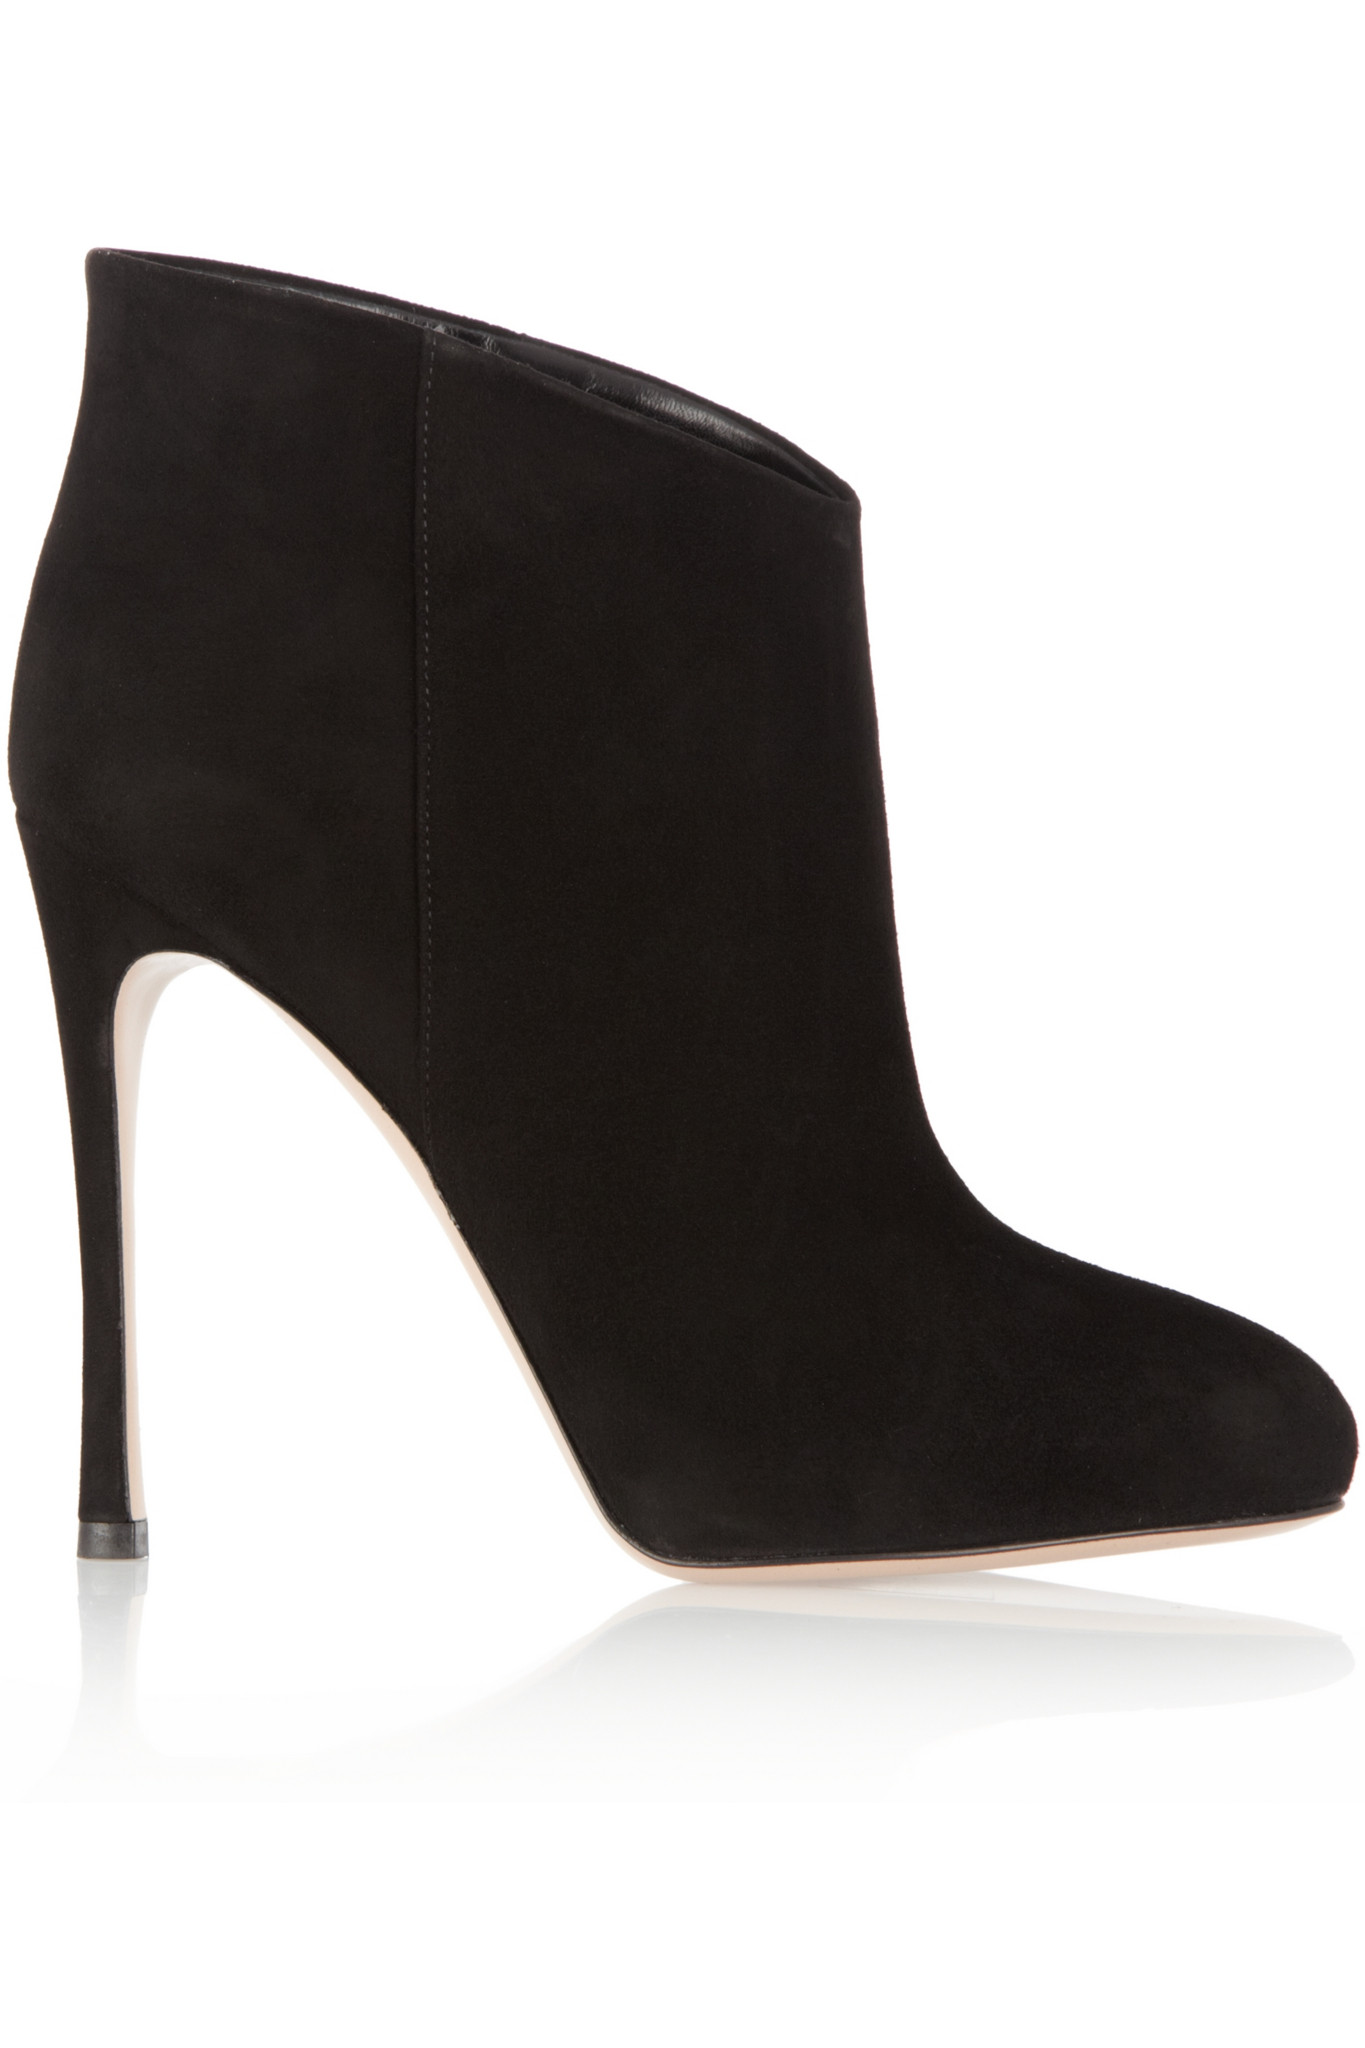 gianvito-rossi-suede-ankle-boots-1.jpg